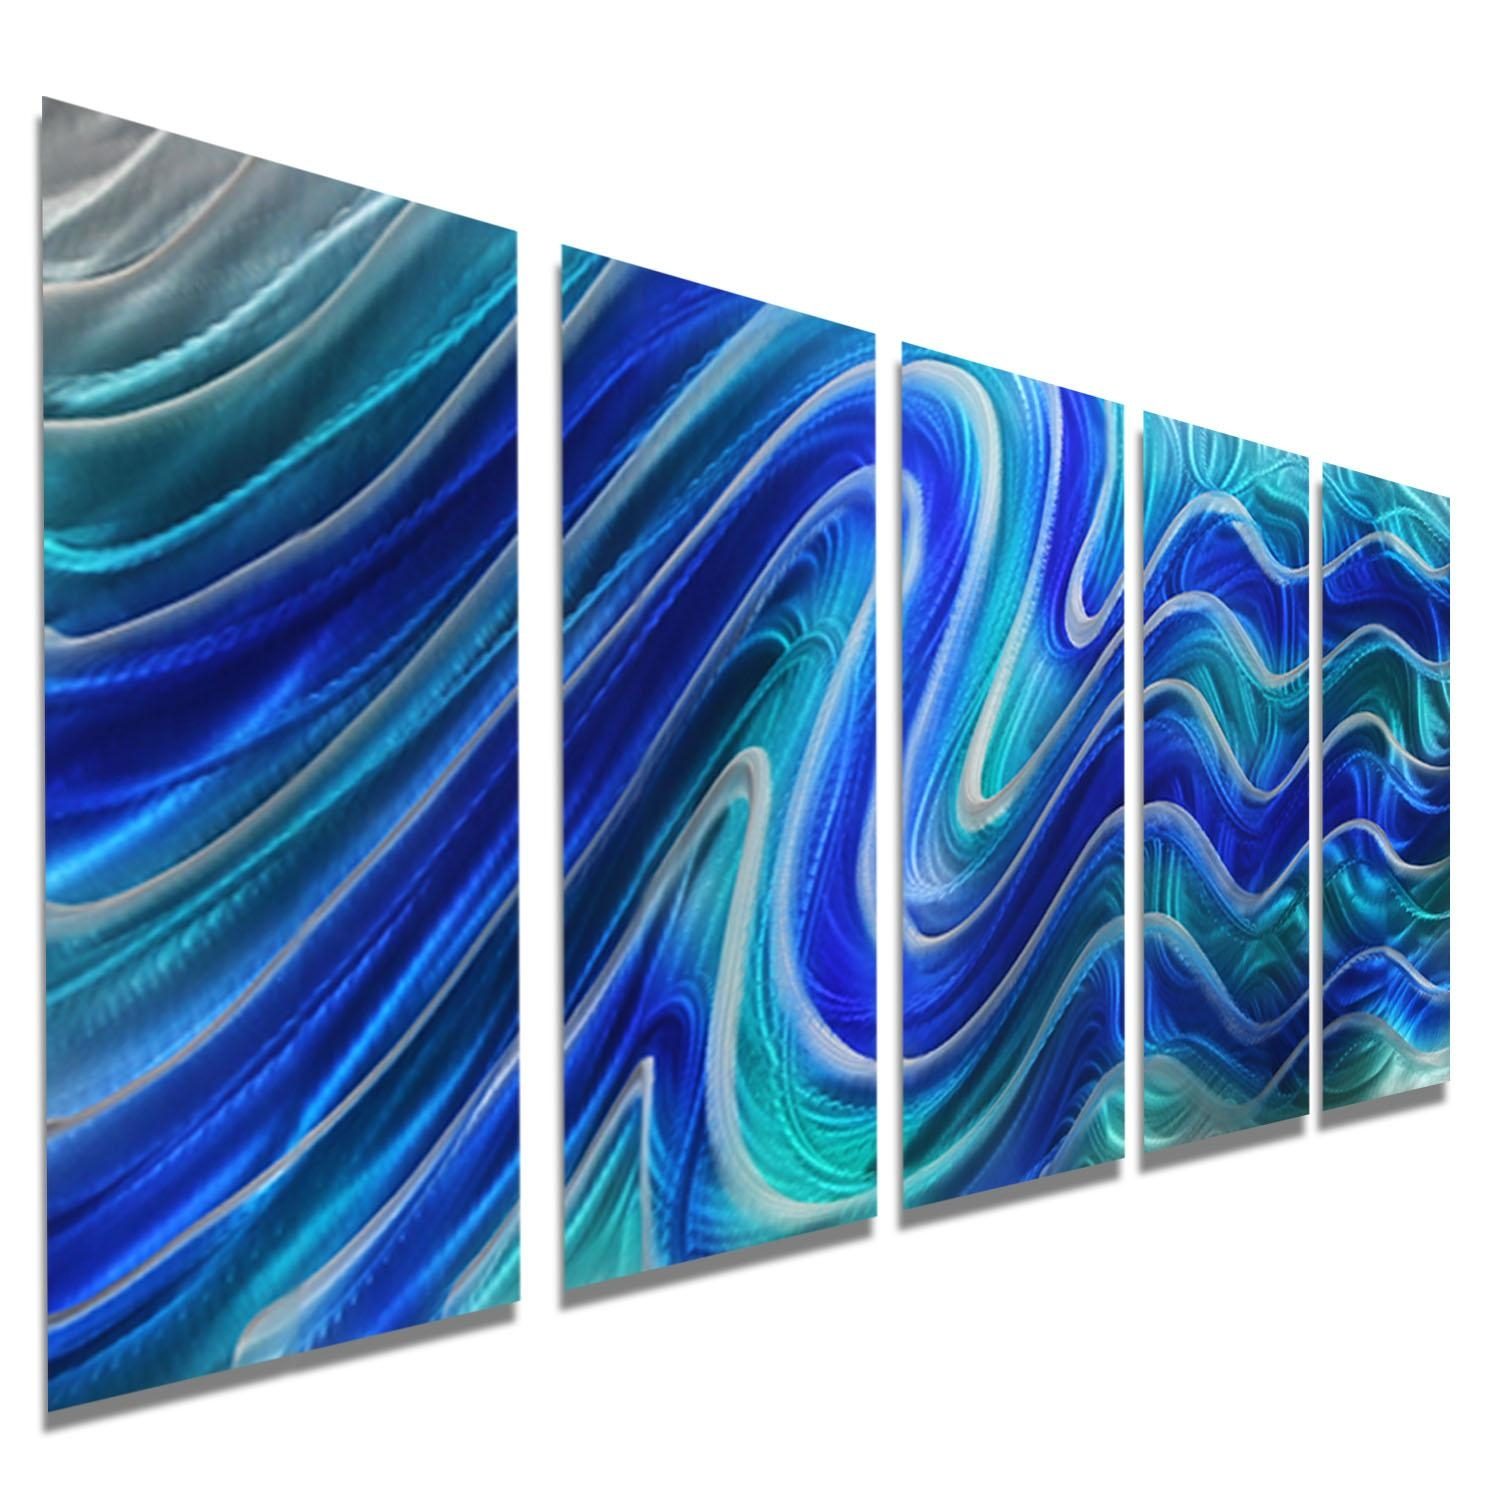 Paradise Plunge – Blue, Teal And Silver Metal Wall Art – 5 Panel Intended For Teal Metal Wall Art (Image 11 of 20)